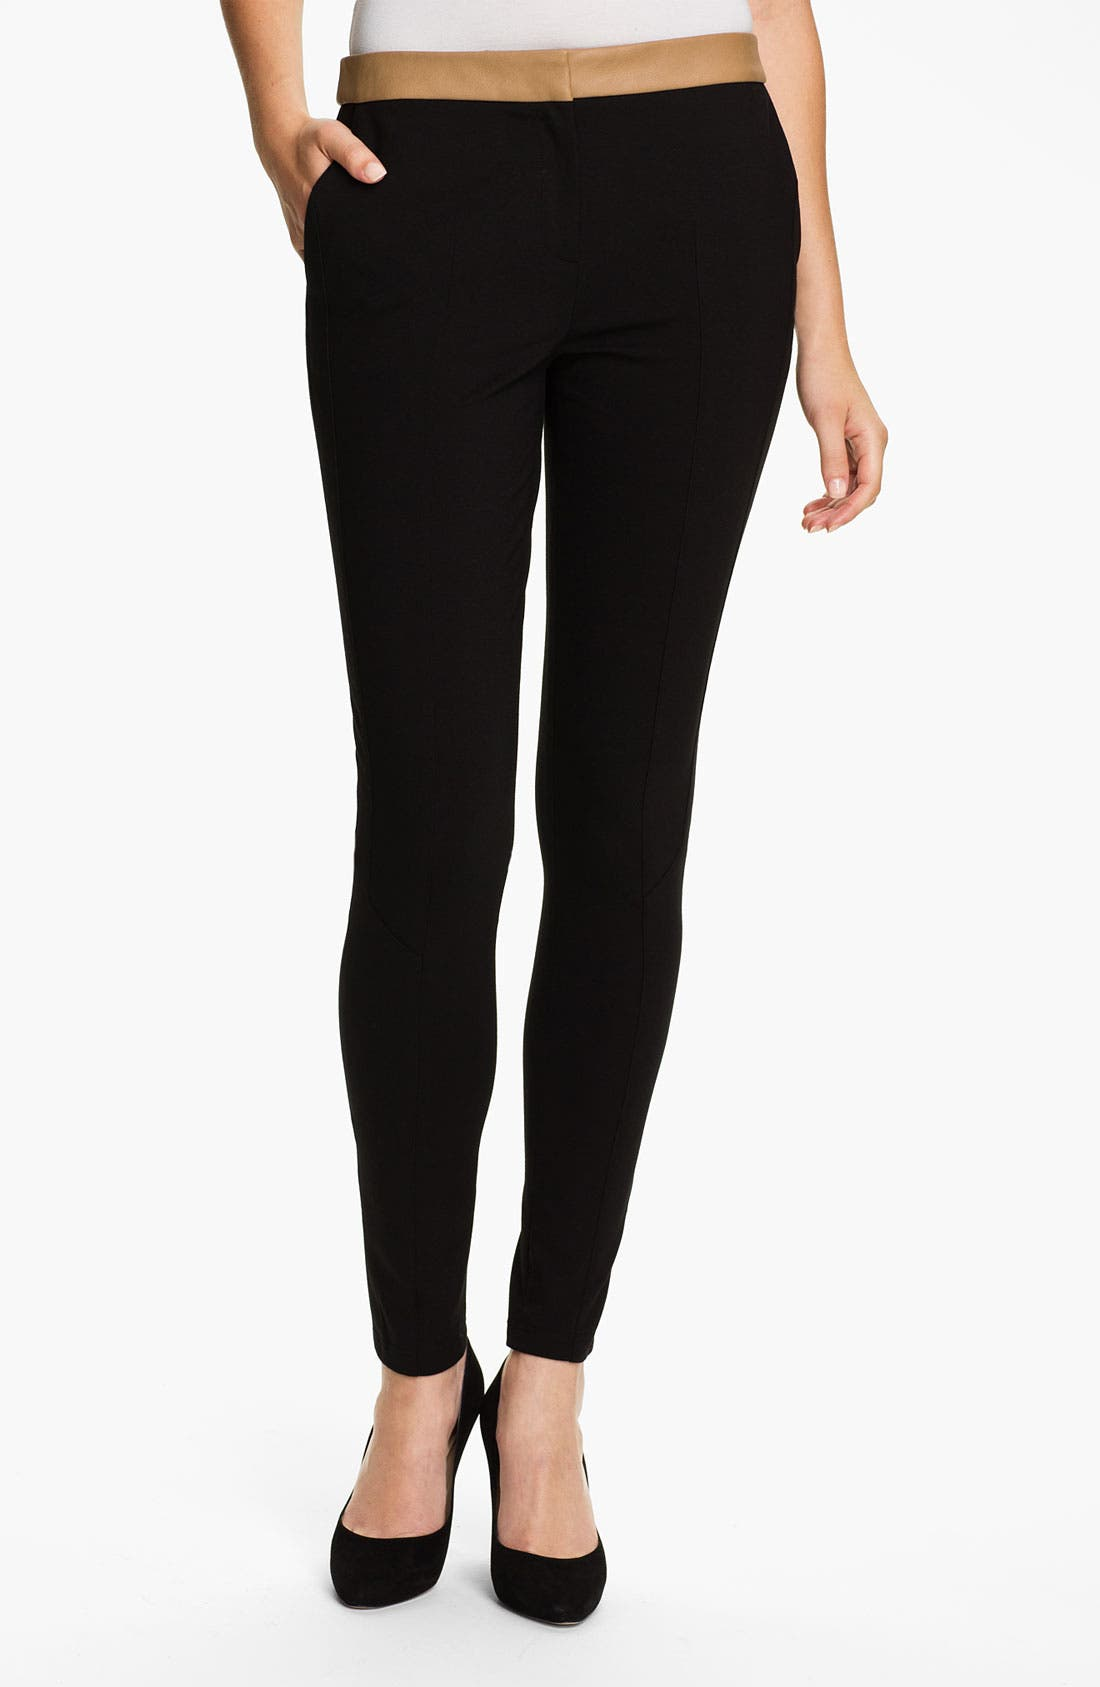 Alternate Image 1 Selected - Ted Baker London Ponte Skinny Pants